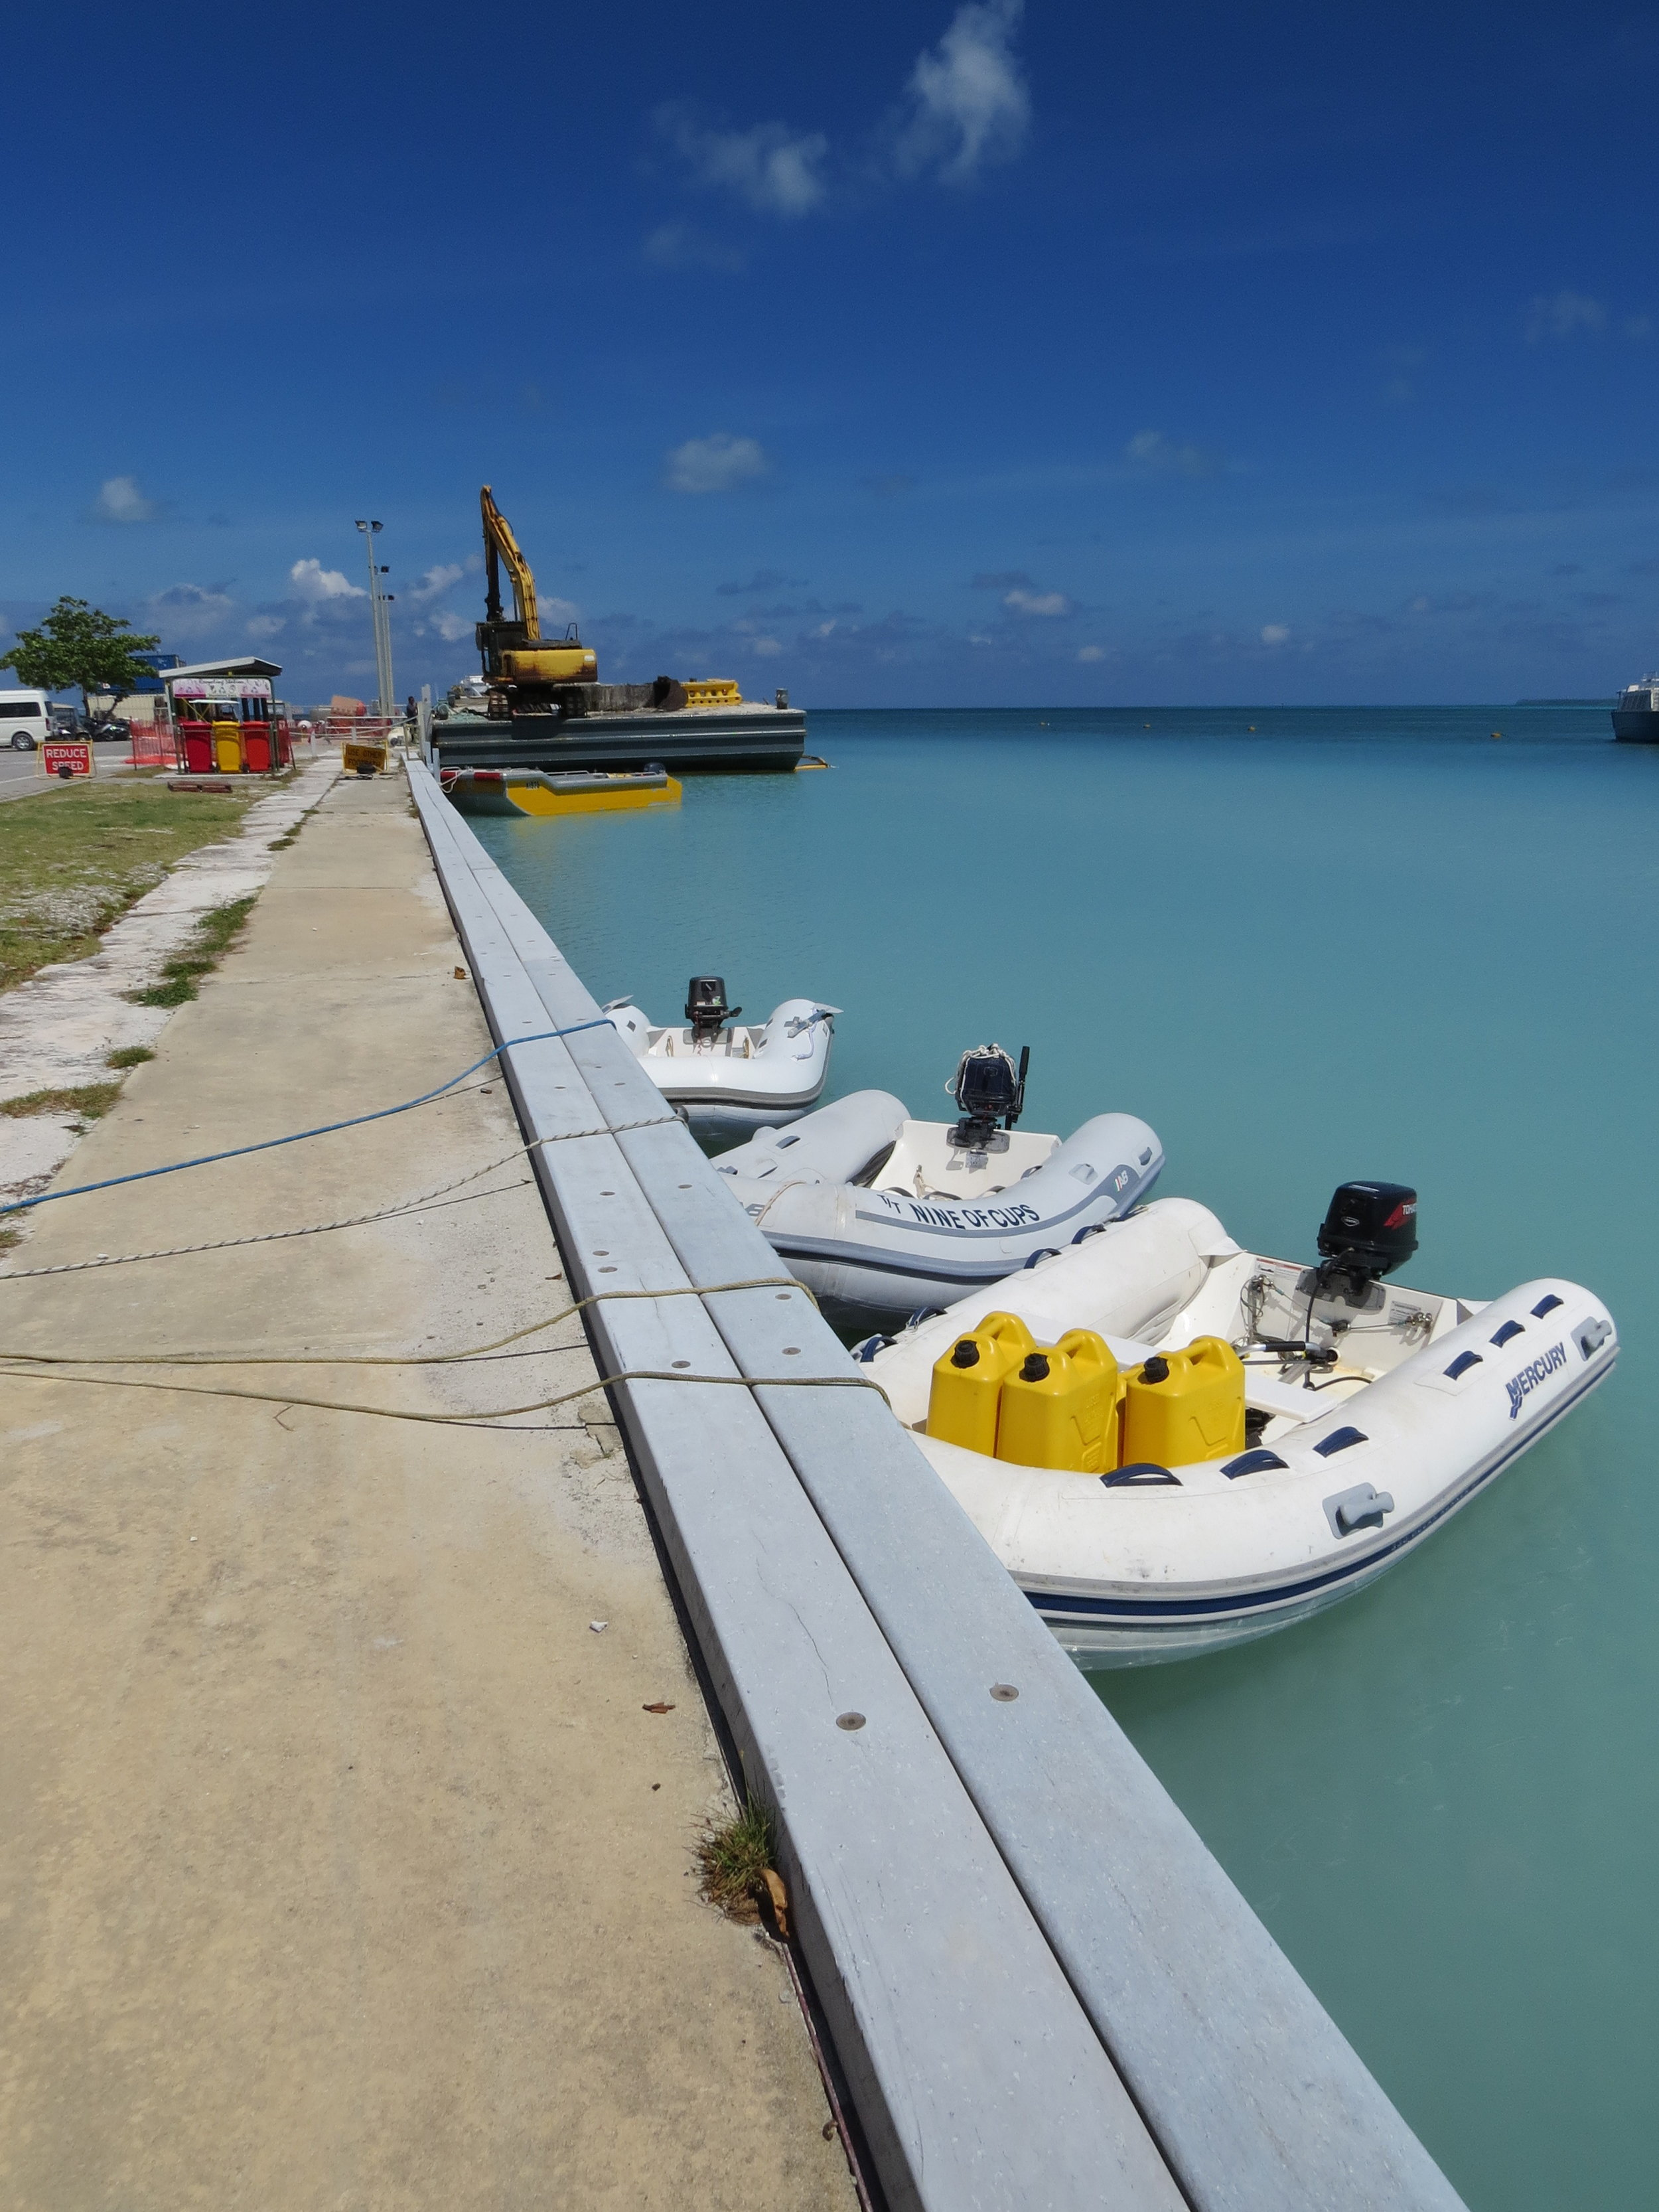 Dinghies tied to the dock